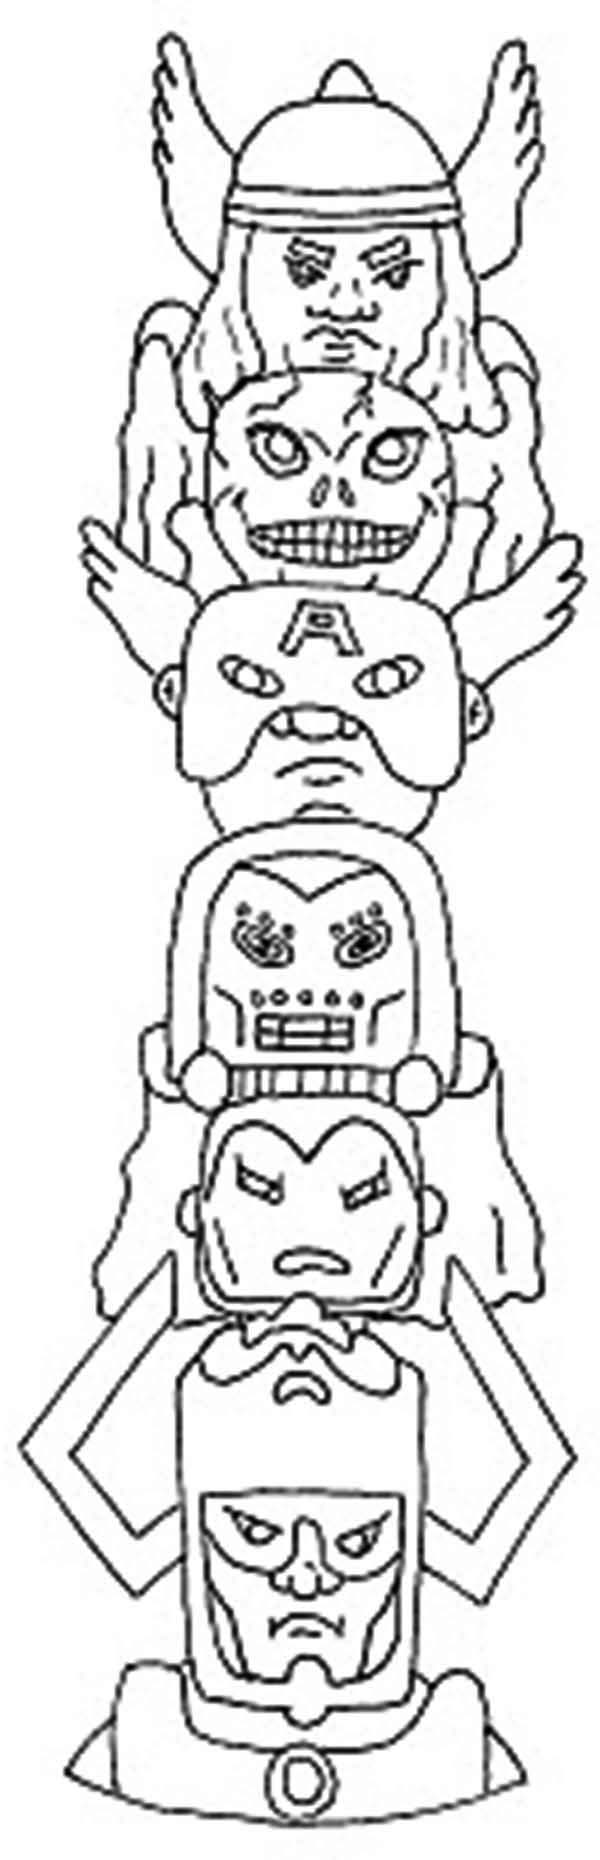 Download Avengers Coloring Pages Here Blackwidow: The Avengers Totem Poles Coloring Page